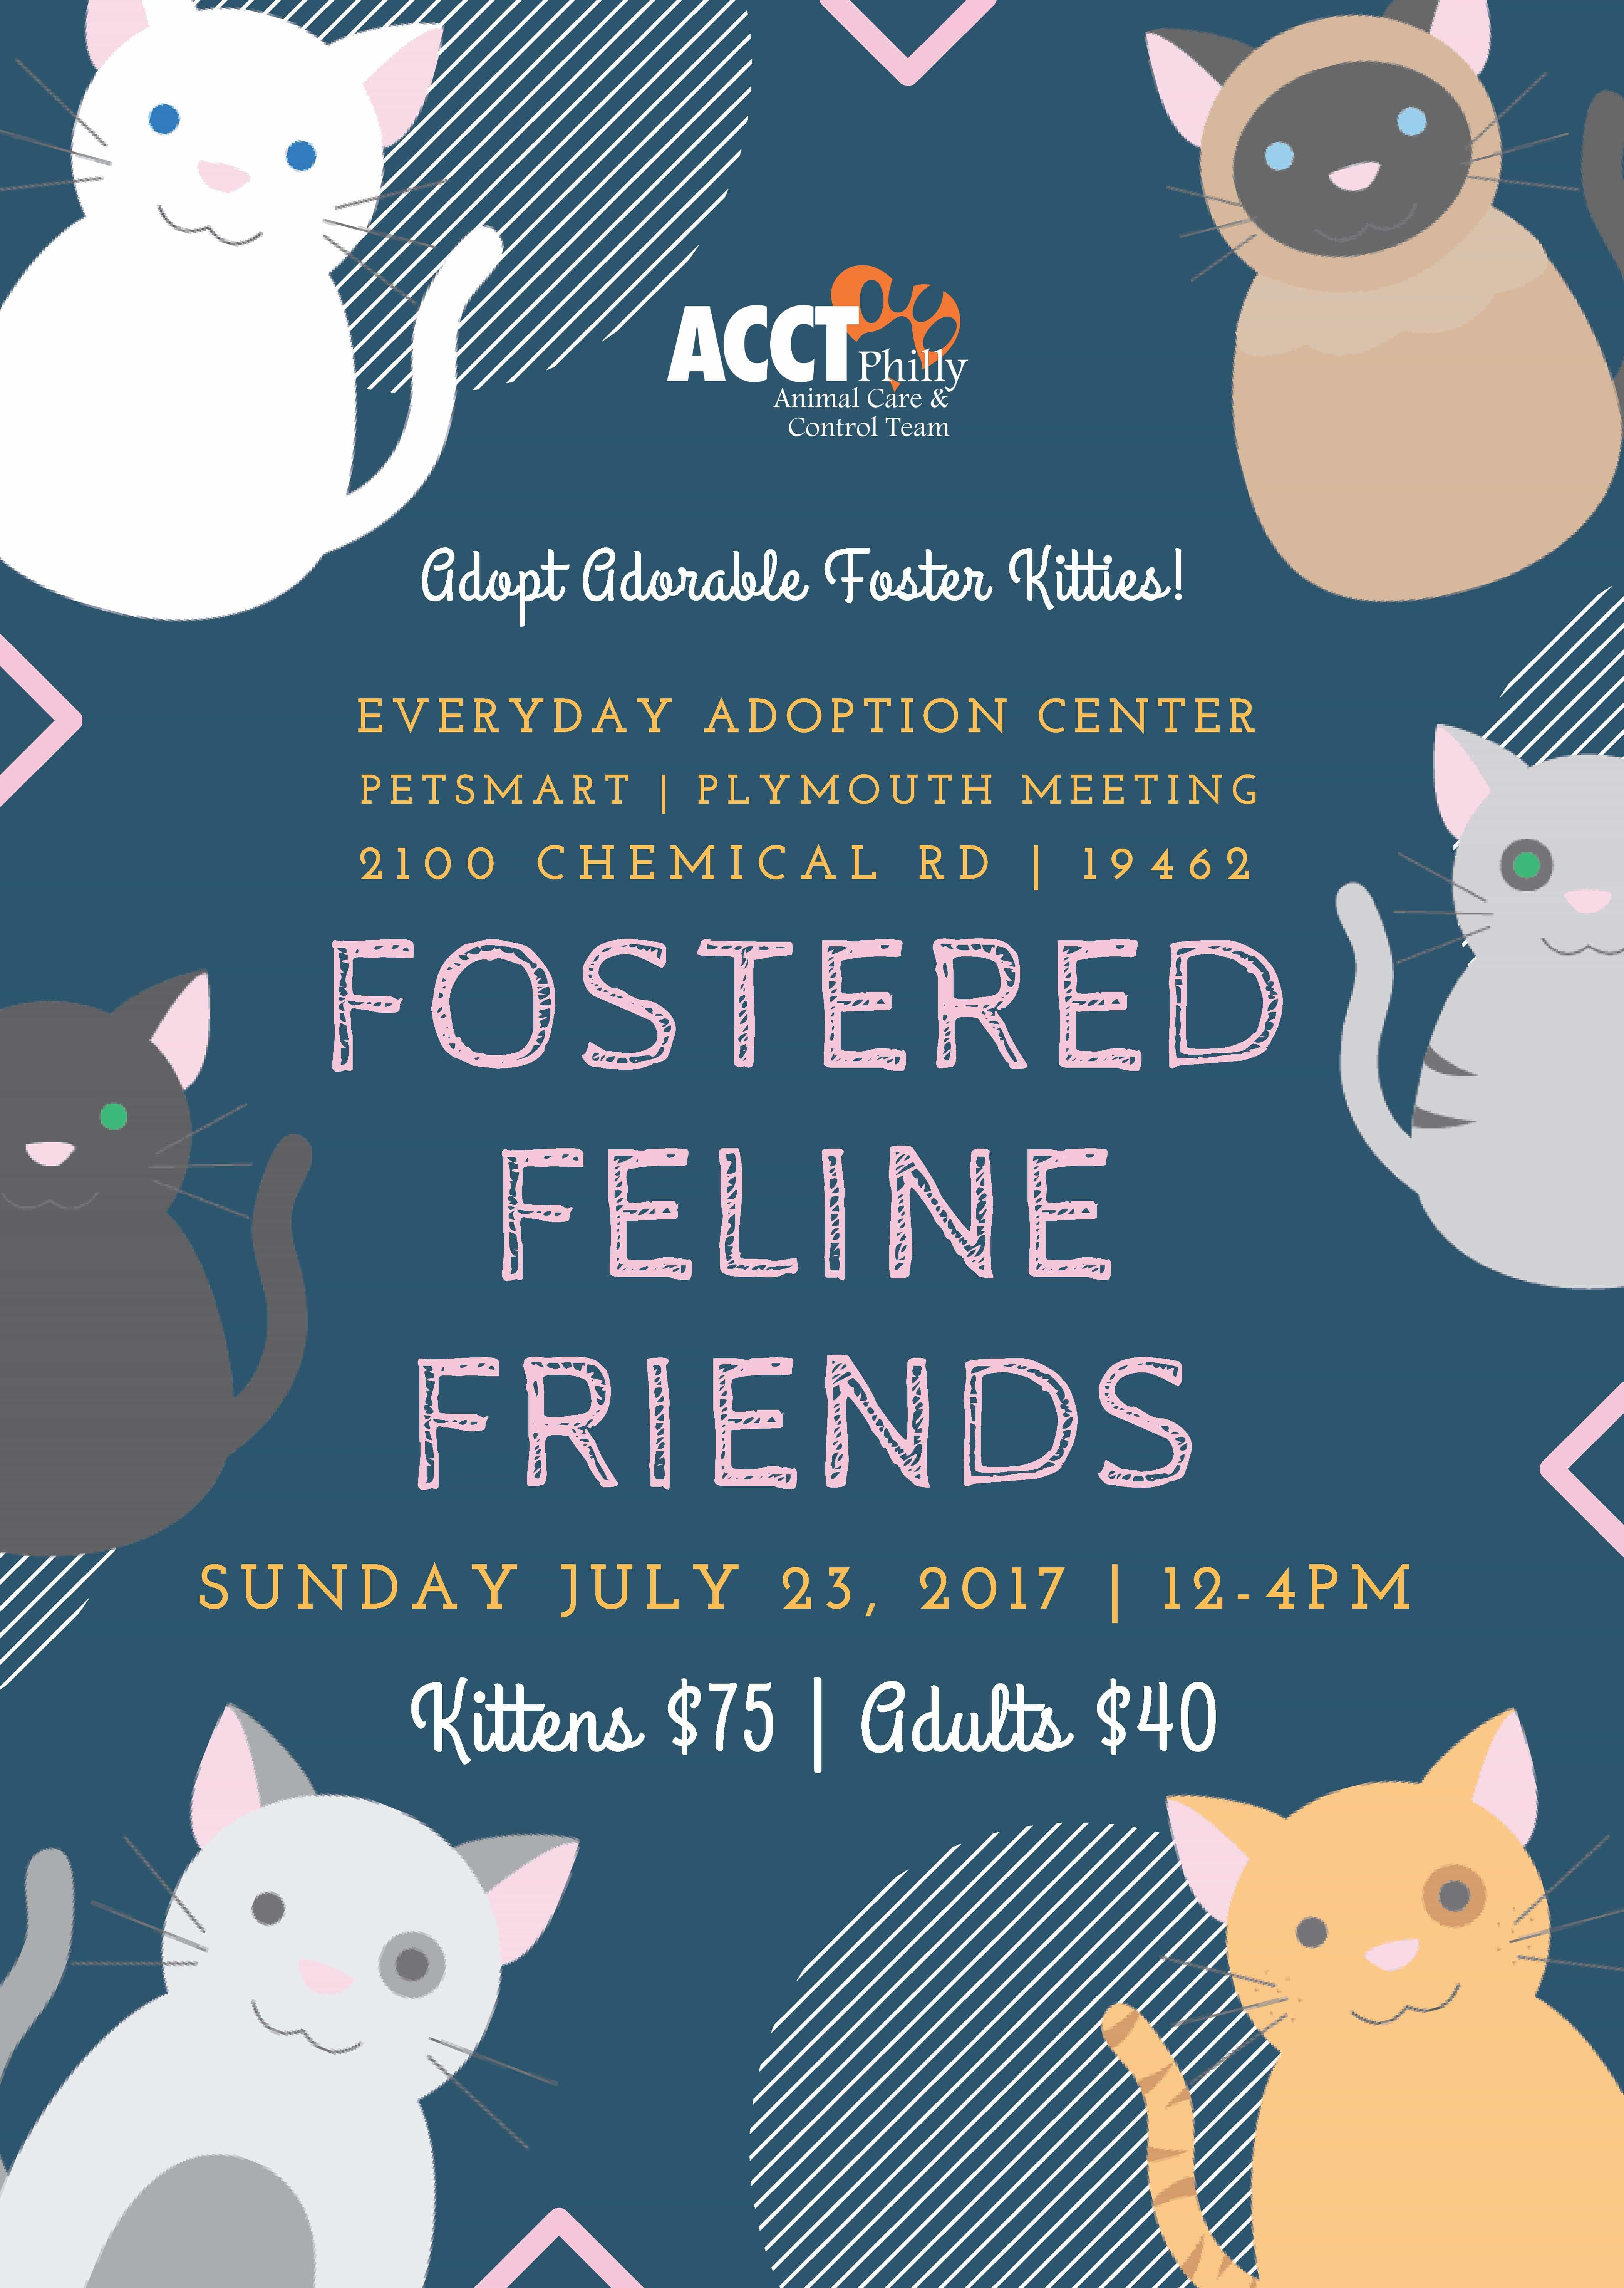 July Adoption Events and Promotions | ACCT Philly